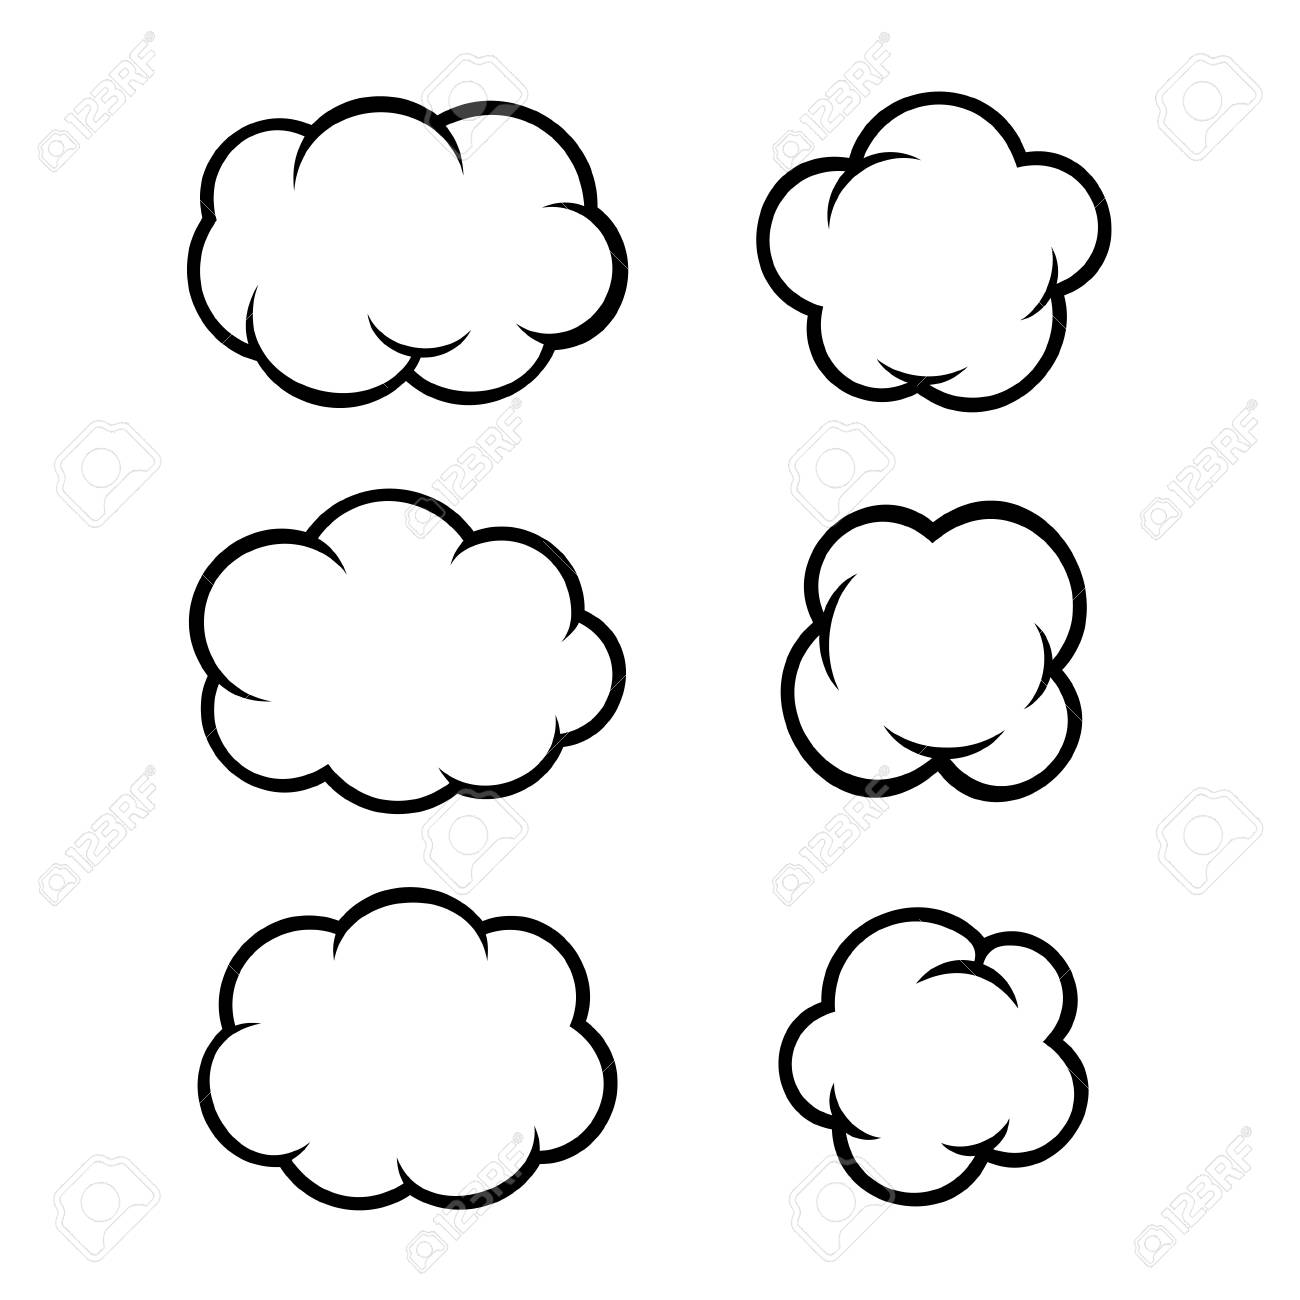 Set of Comic Bubbles and Elements. Vector illustration - 35244112